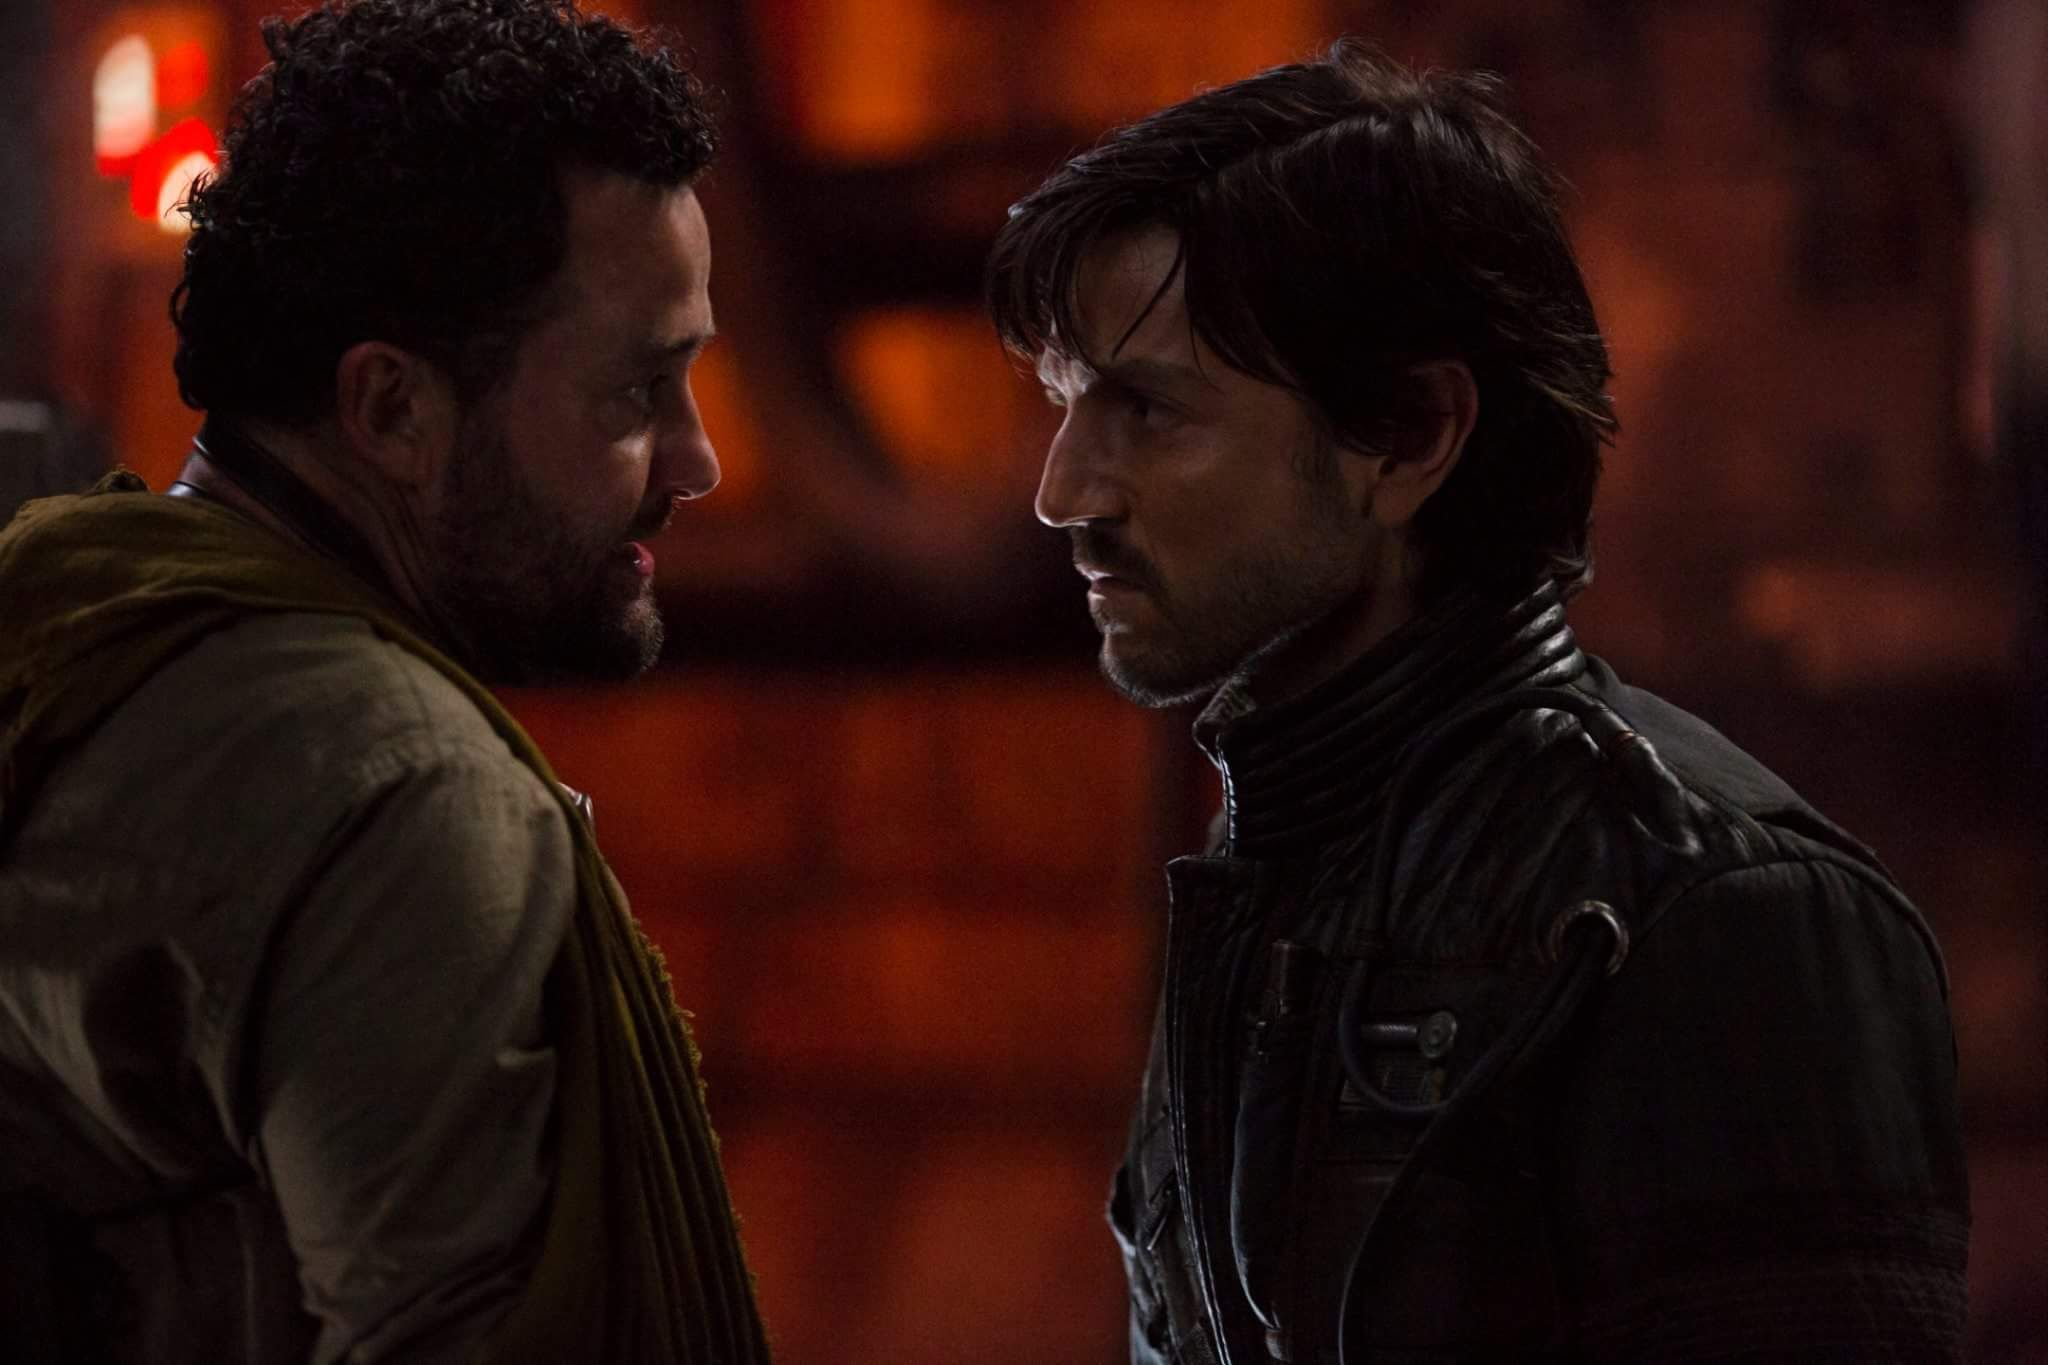 Disney streaming service gets second live-action 'Star Wars' series about Cassian Andor